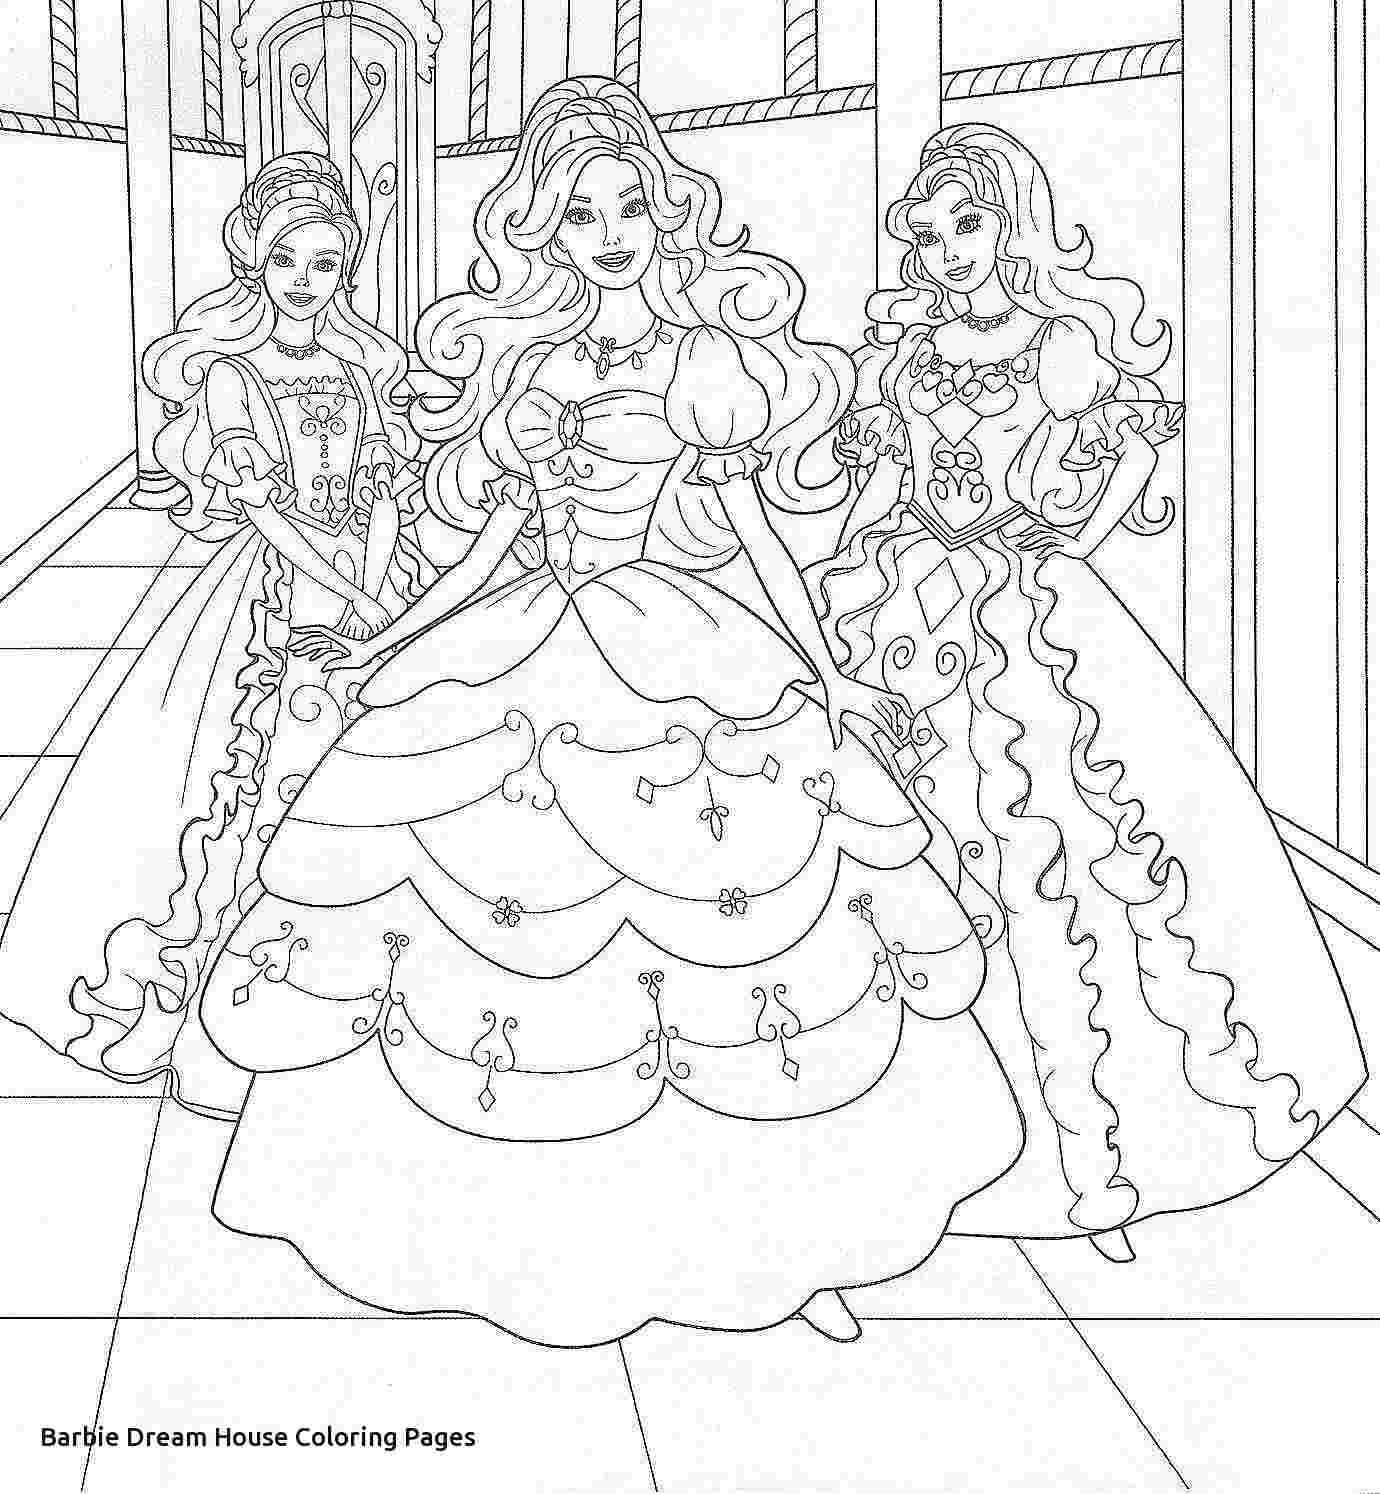 Barbie Dream House Coloring Pages 9999 Printable Barbie Coloring Pages Princess Coloring Pages Barbie Coloring